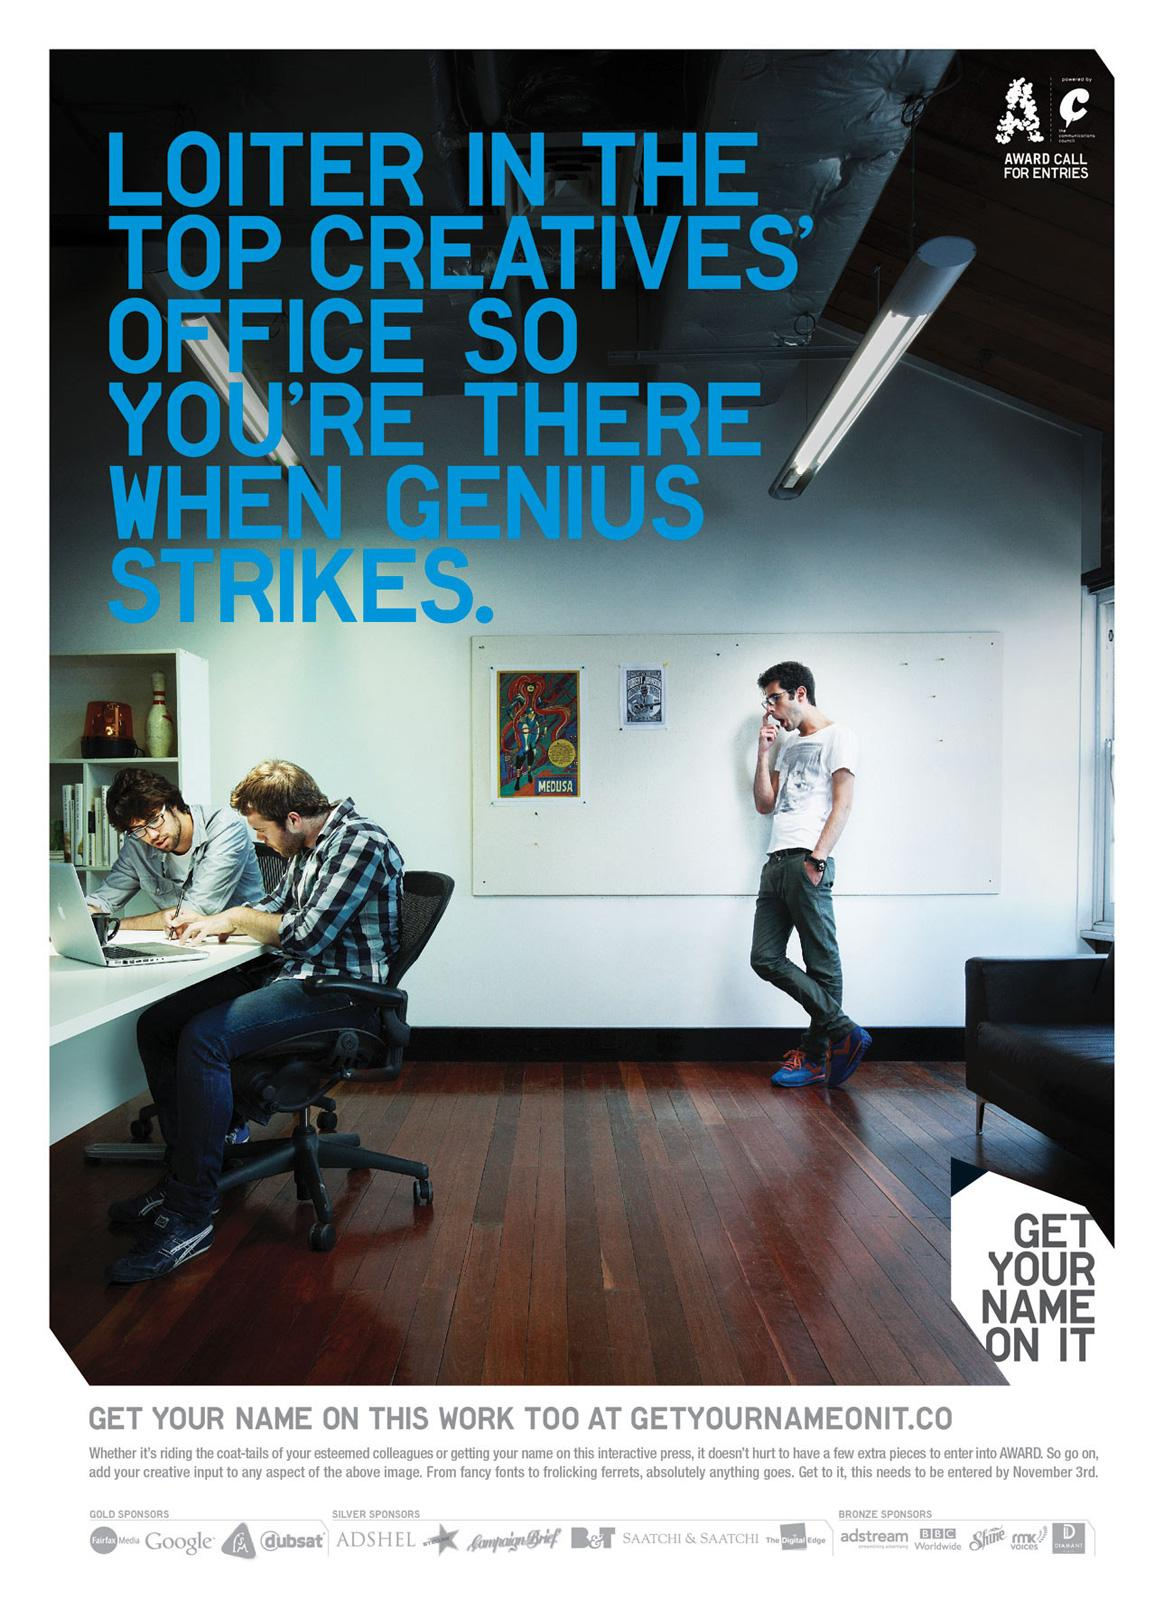 AWARD Print Ad -  Get Your Name On It, Creatives Office